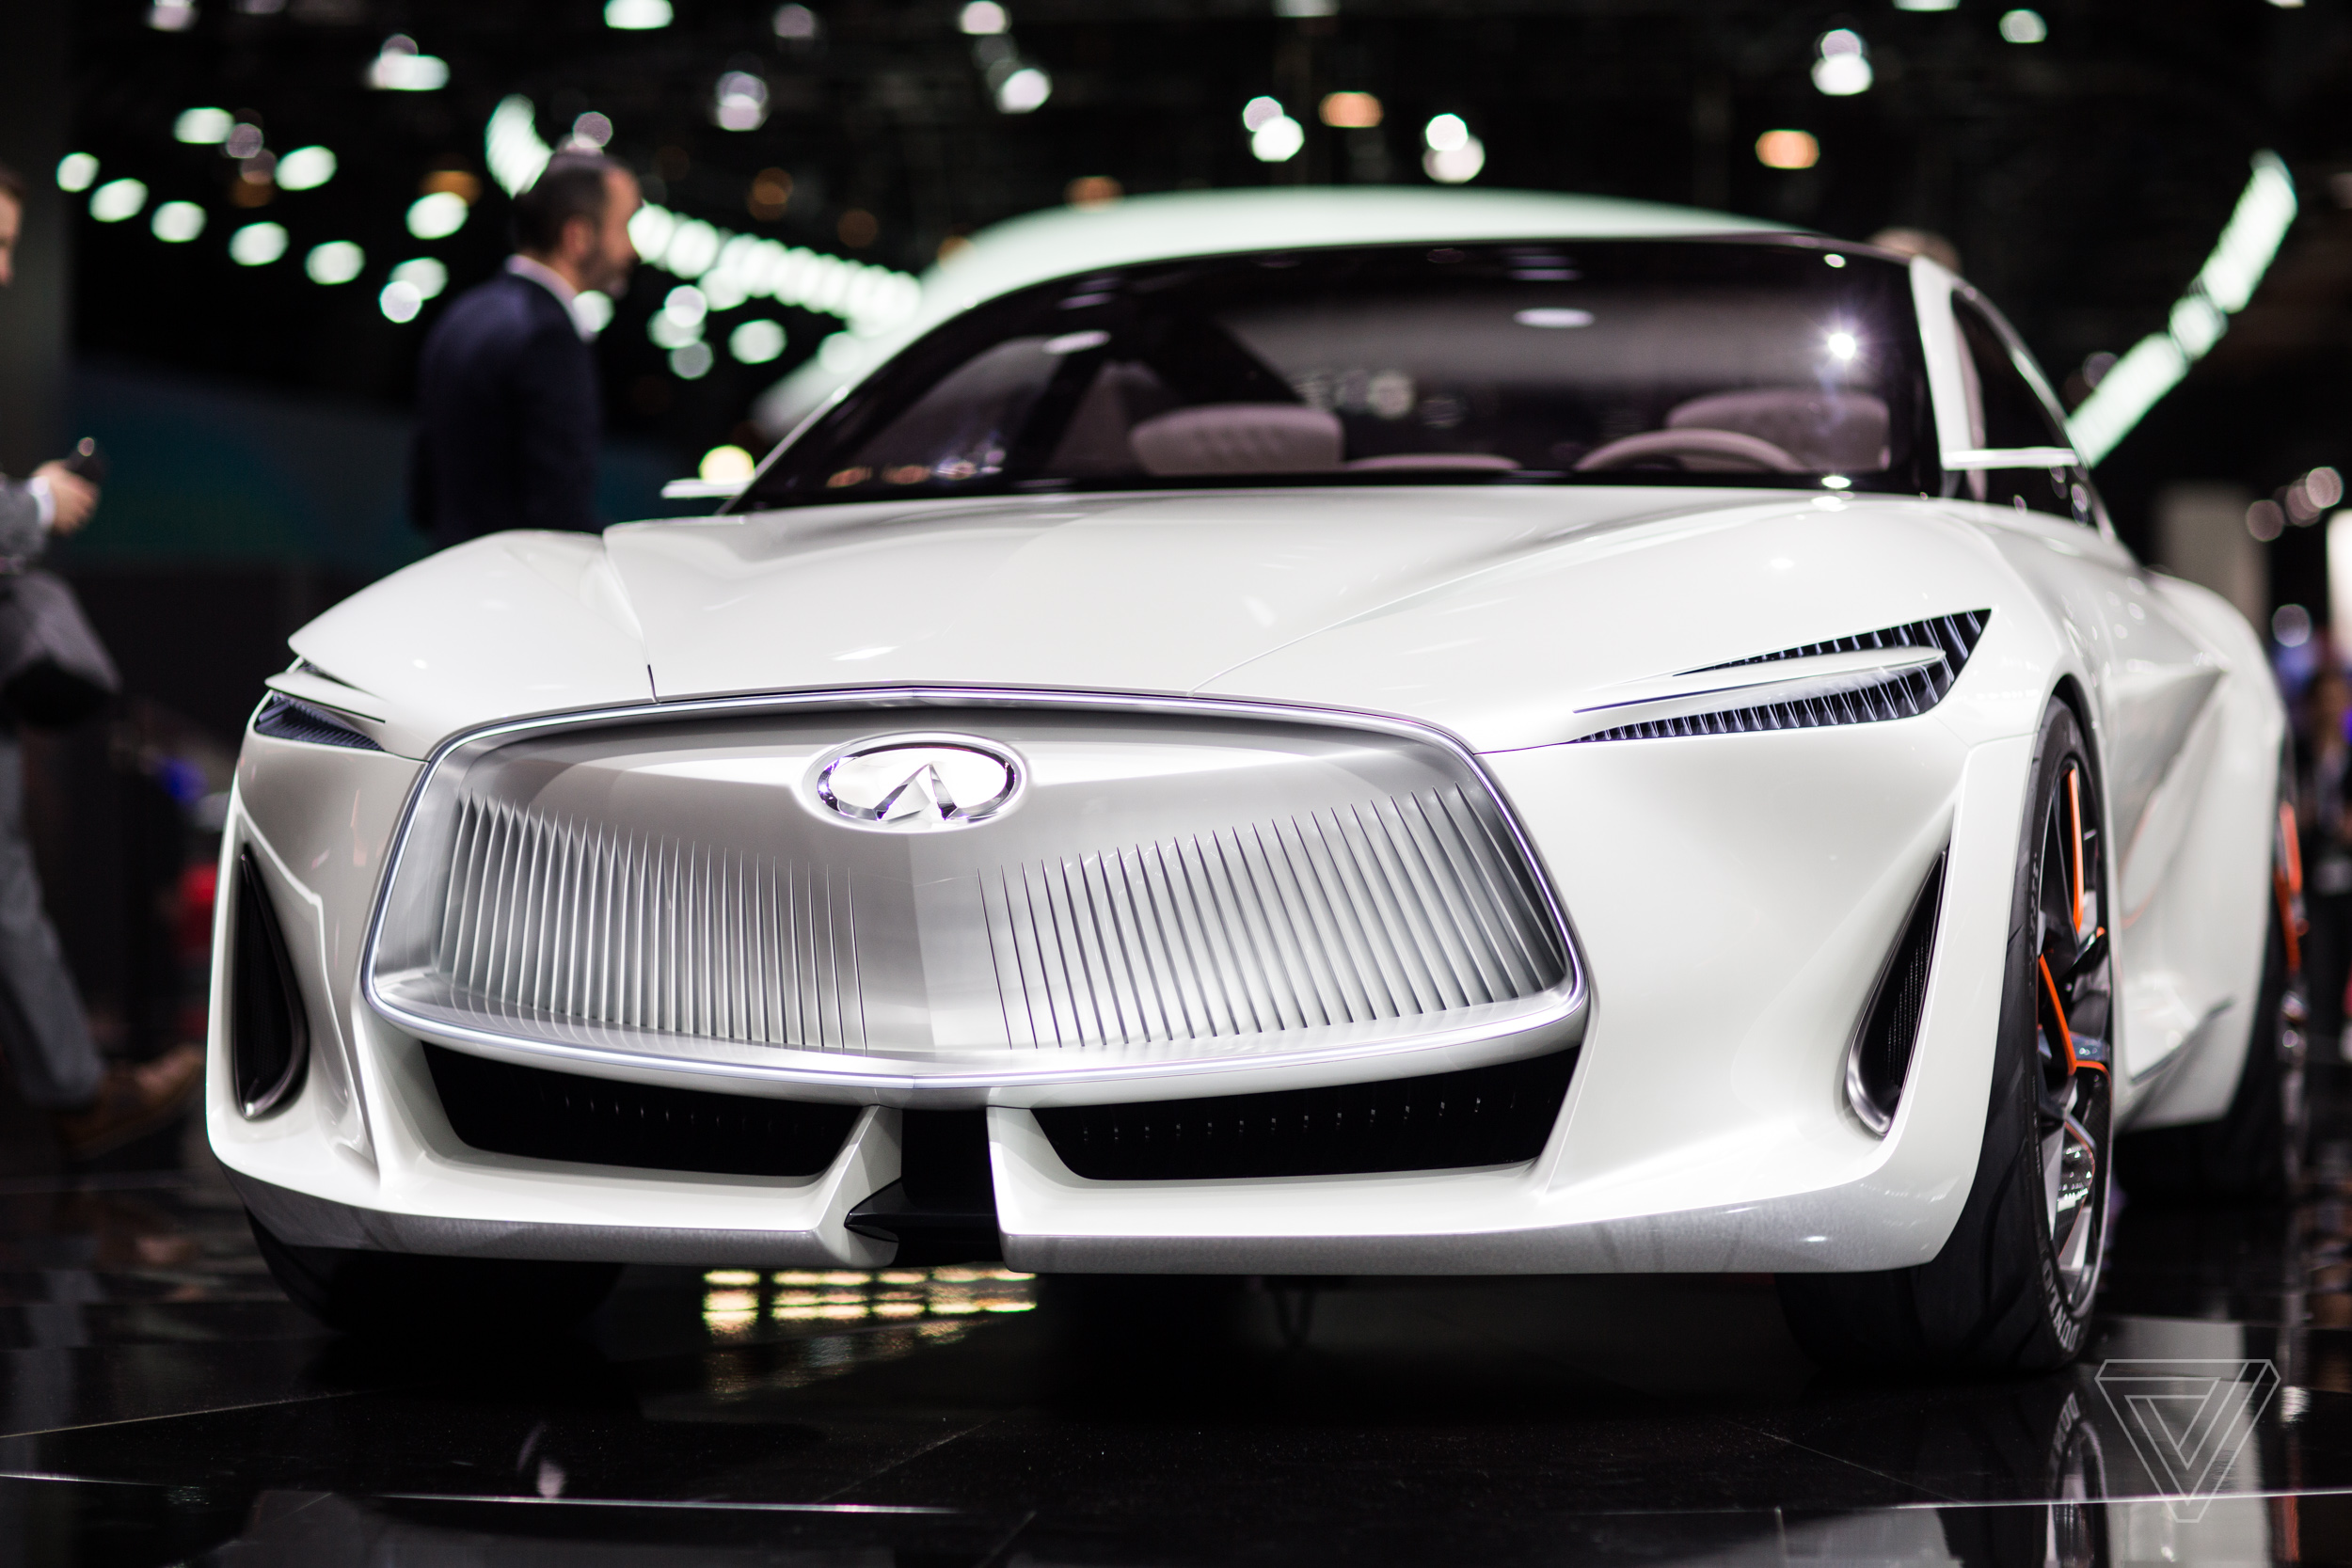 Infiniti S New Concept Car Is A Land Yacht For Movie Villains